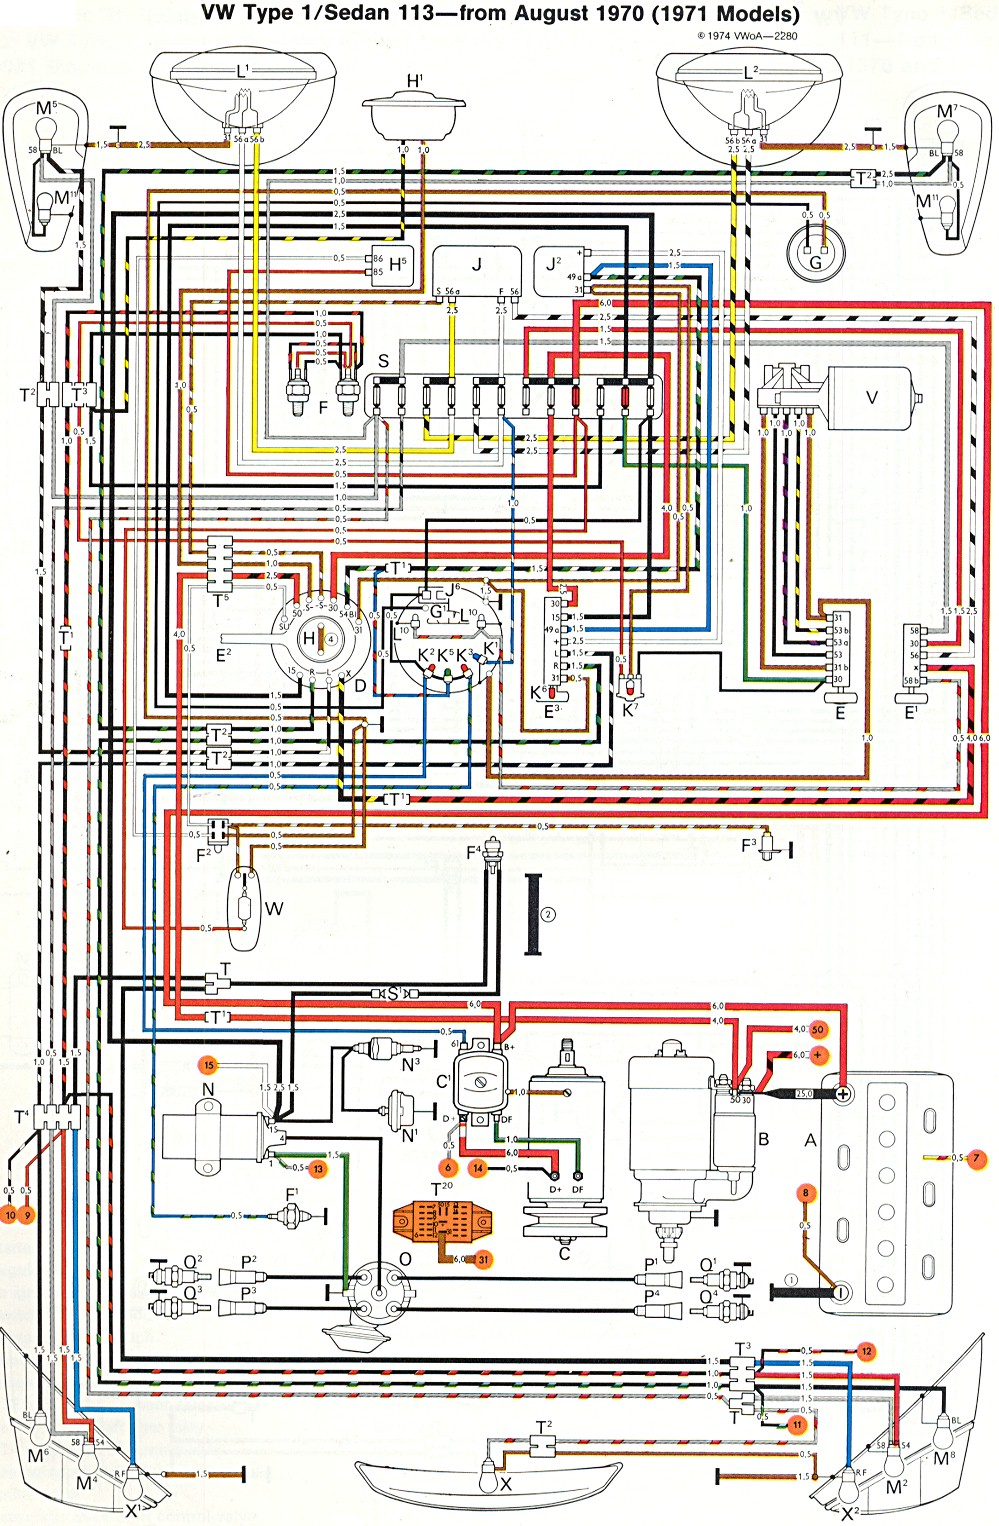 1970 vw karmann ghia wiring diagram wrg 1757  74 vw beetle wiring  wrg 1757  74 vw beetle wiring